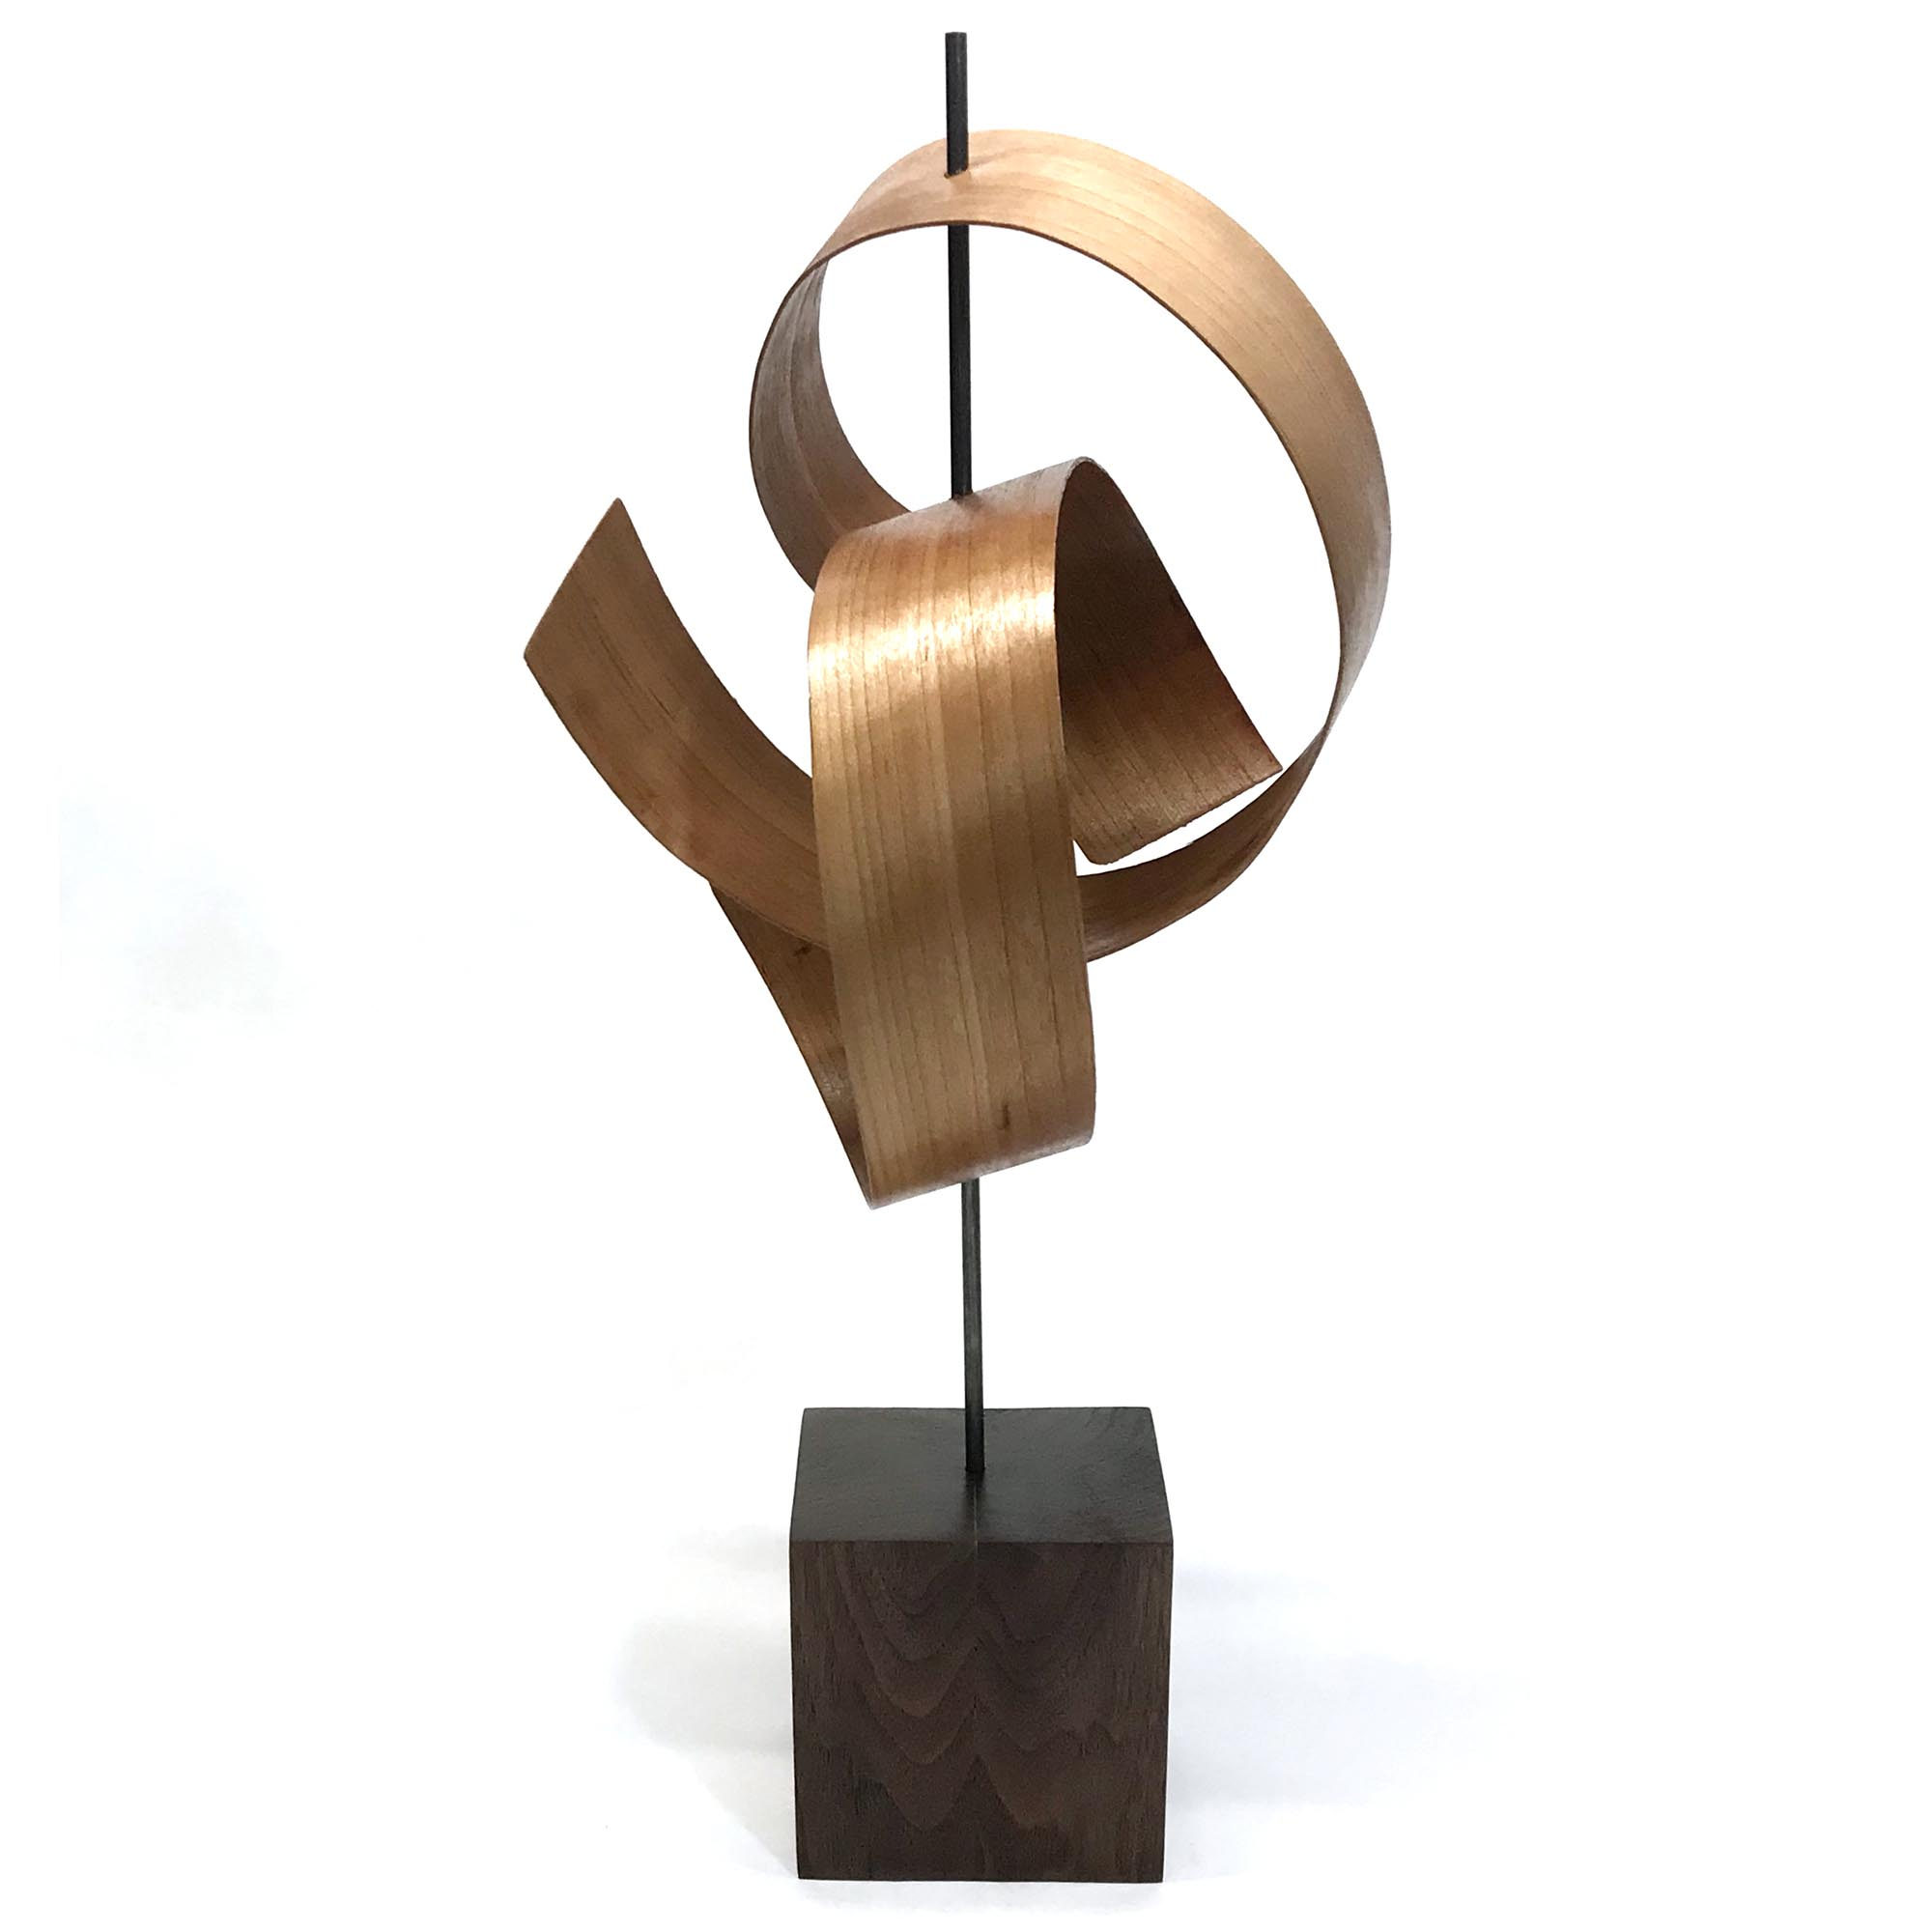 Ripcurl M by Jackson Wright - Modern Wood Sculpture, Mid-Century Home Decor - Image 2